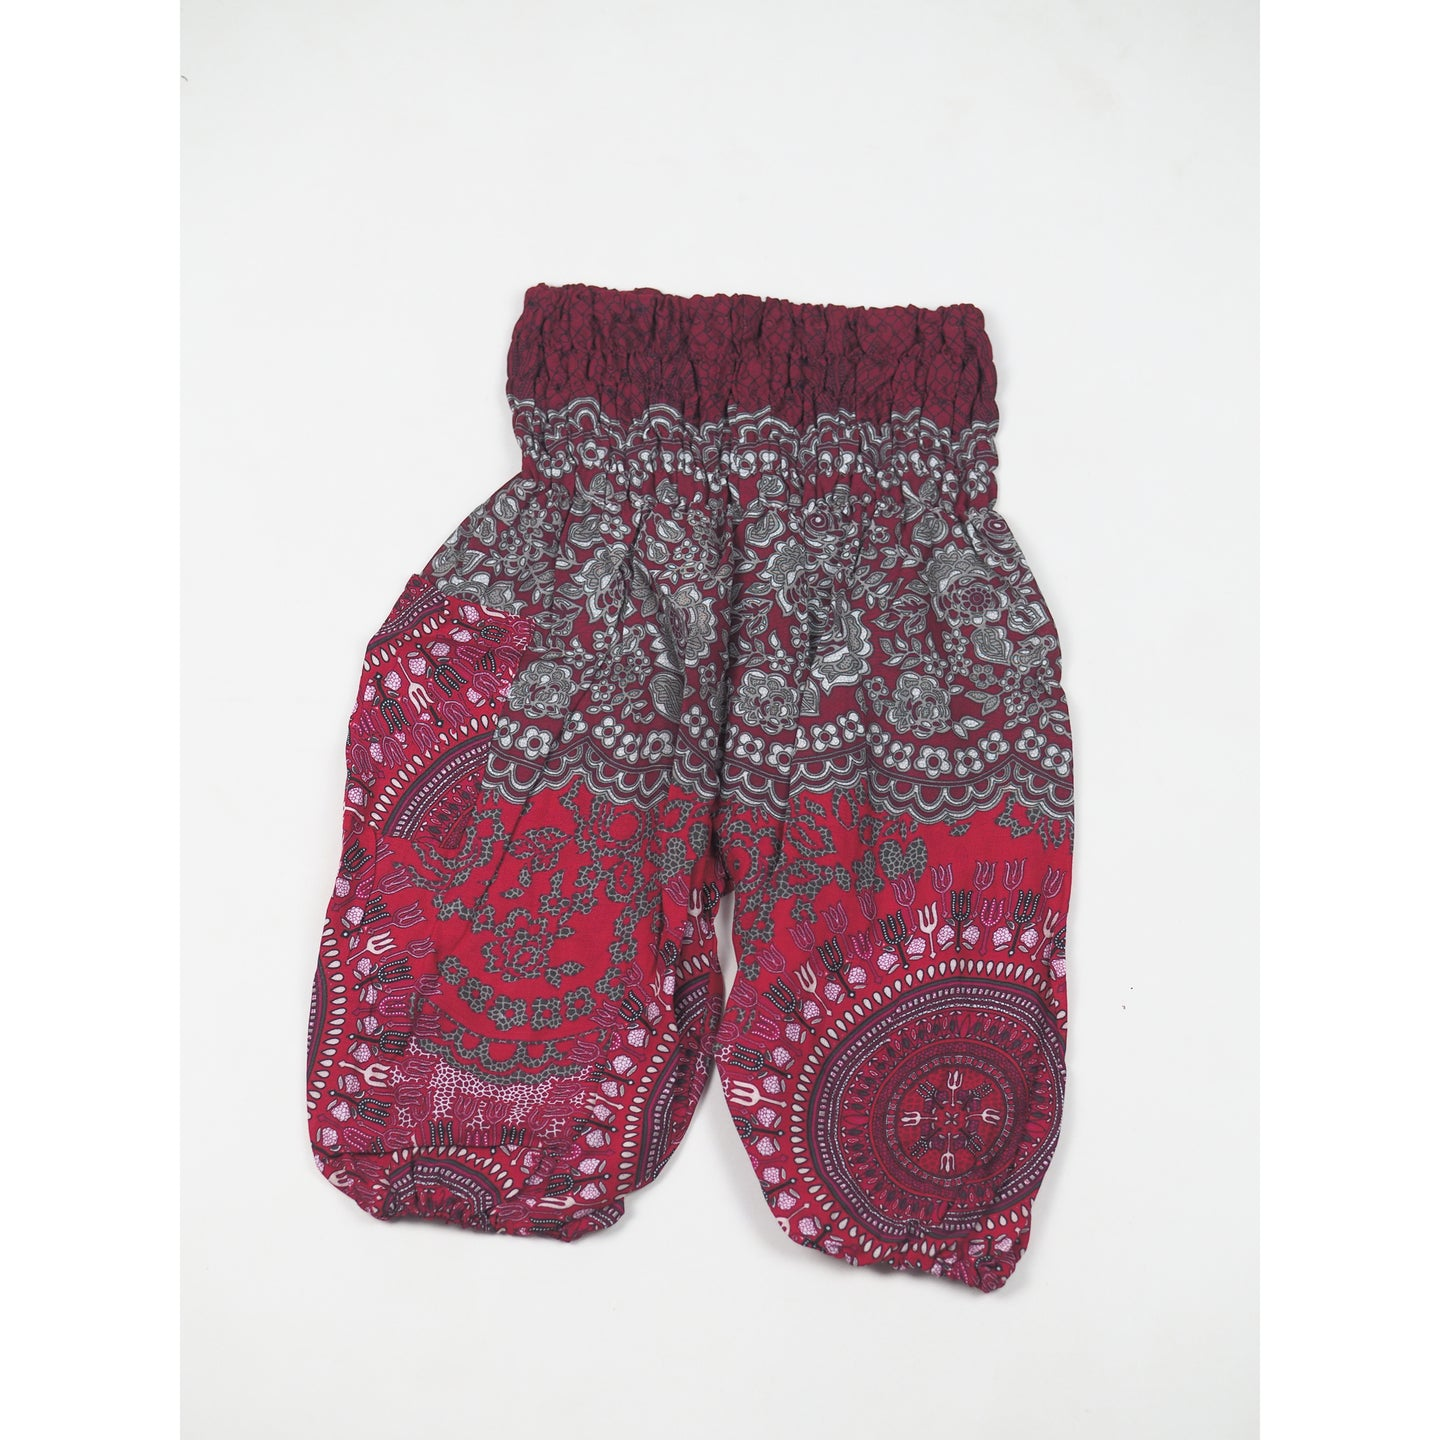 Clock nut Unisex Kid Harem Pants in Red PP0004 020067 06